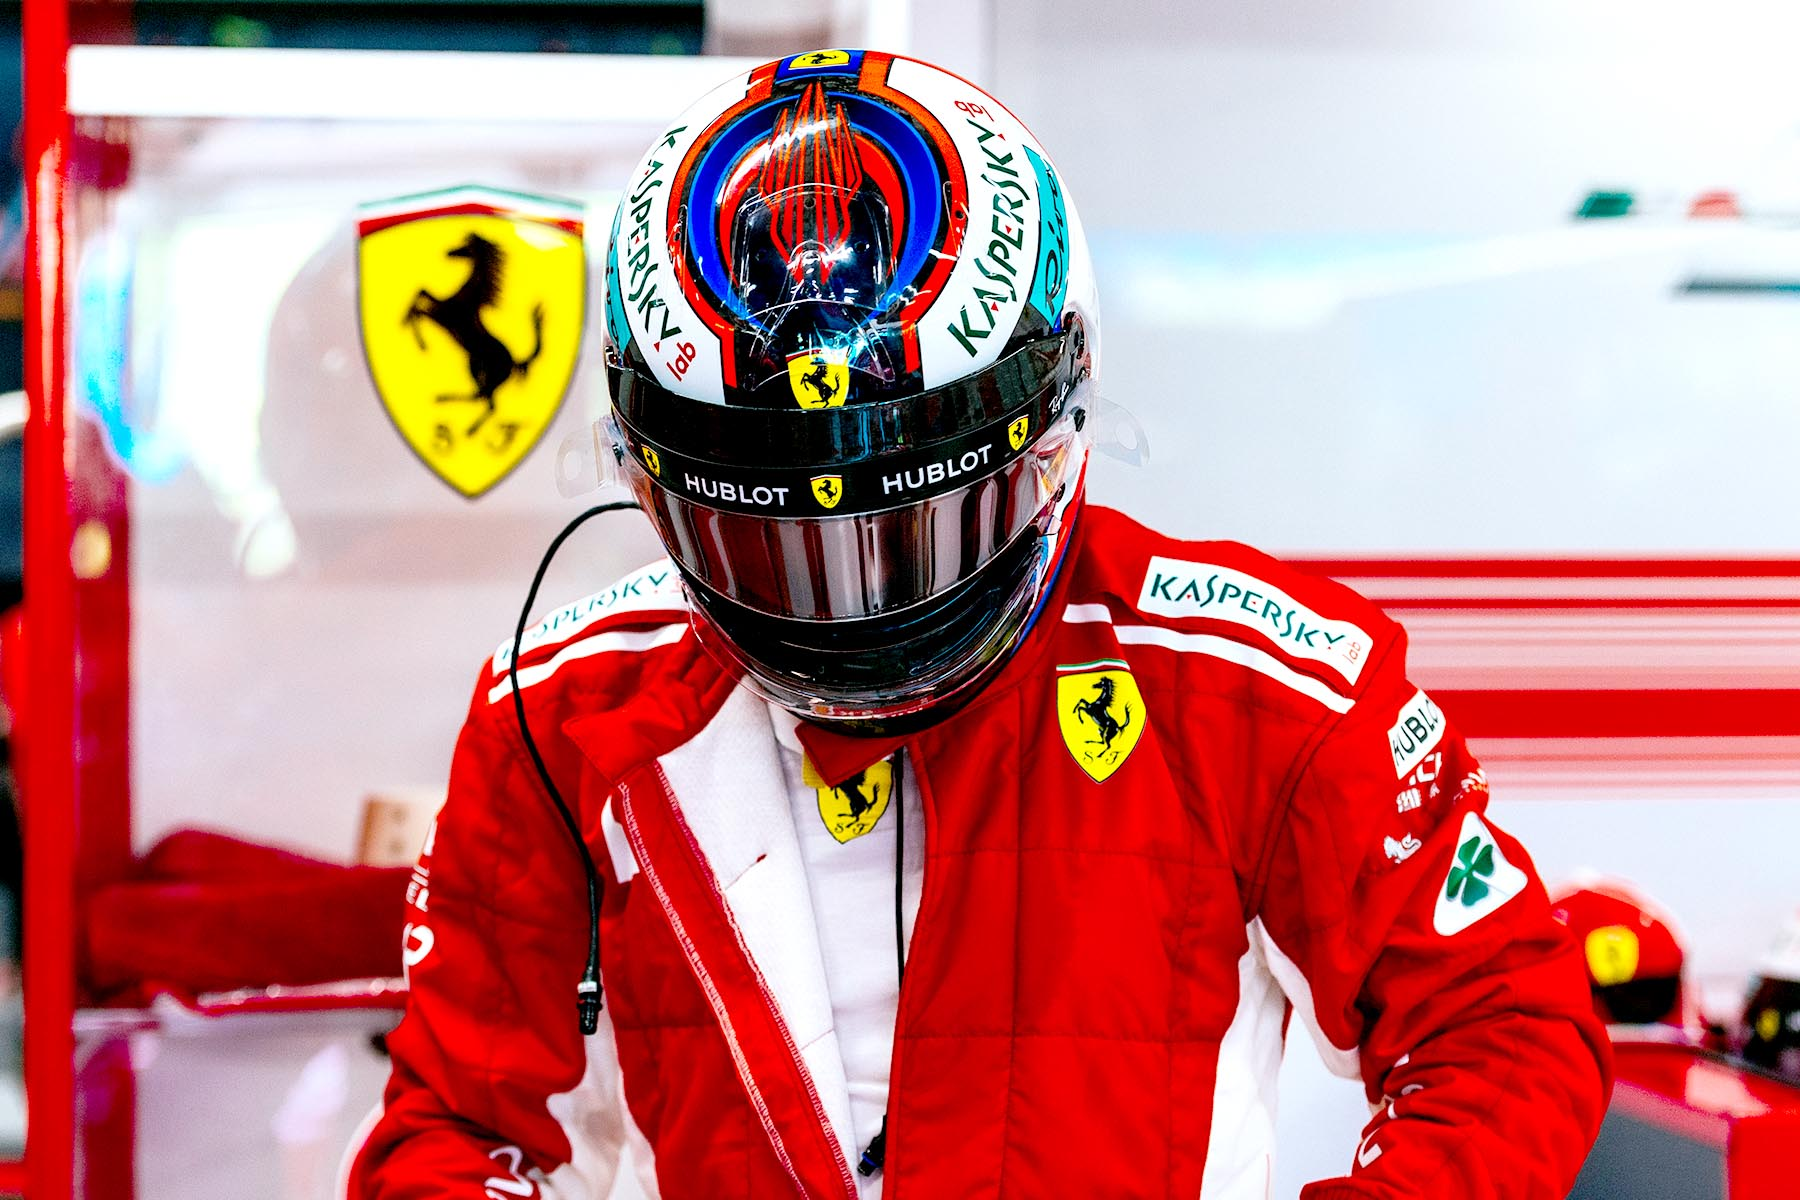 Kimi Raikkonen in the Ferrari garage at the 2018 Singapore Grand Prix.